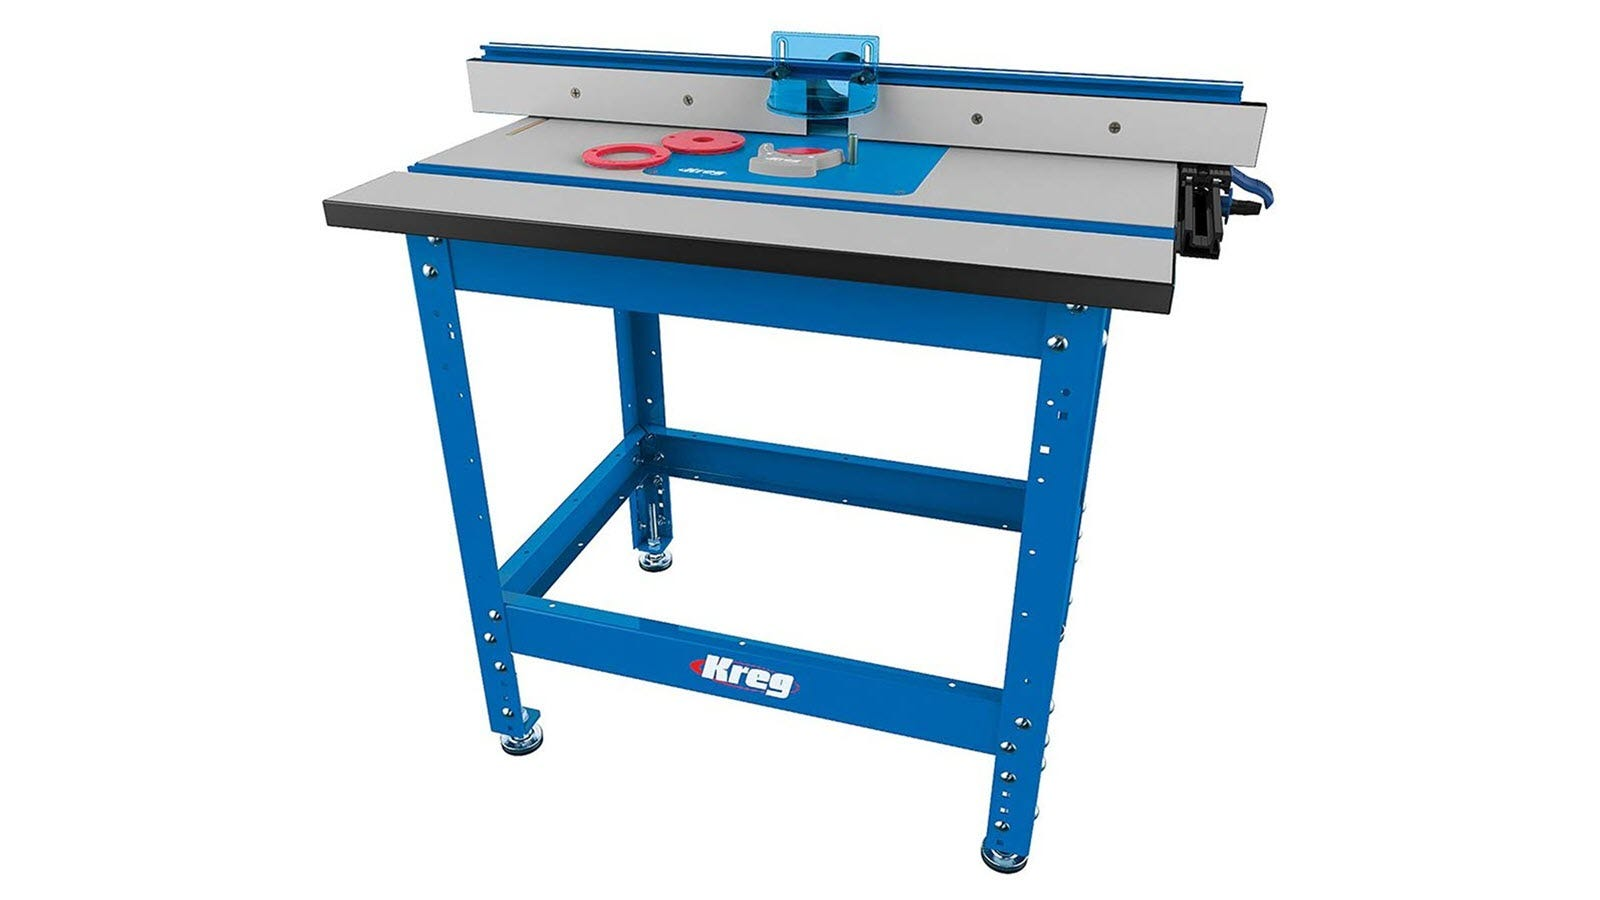 A Kreg Router table, showing blue full sized legs and upgraded fence.